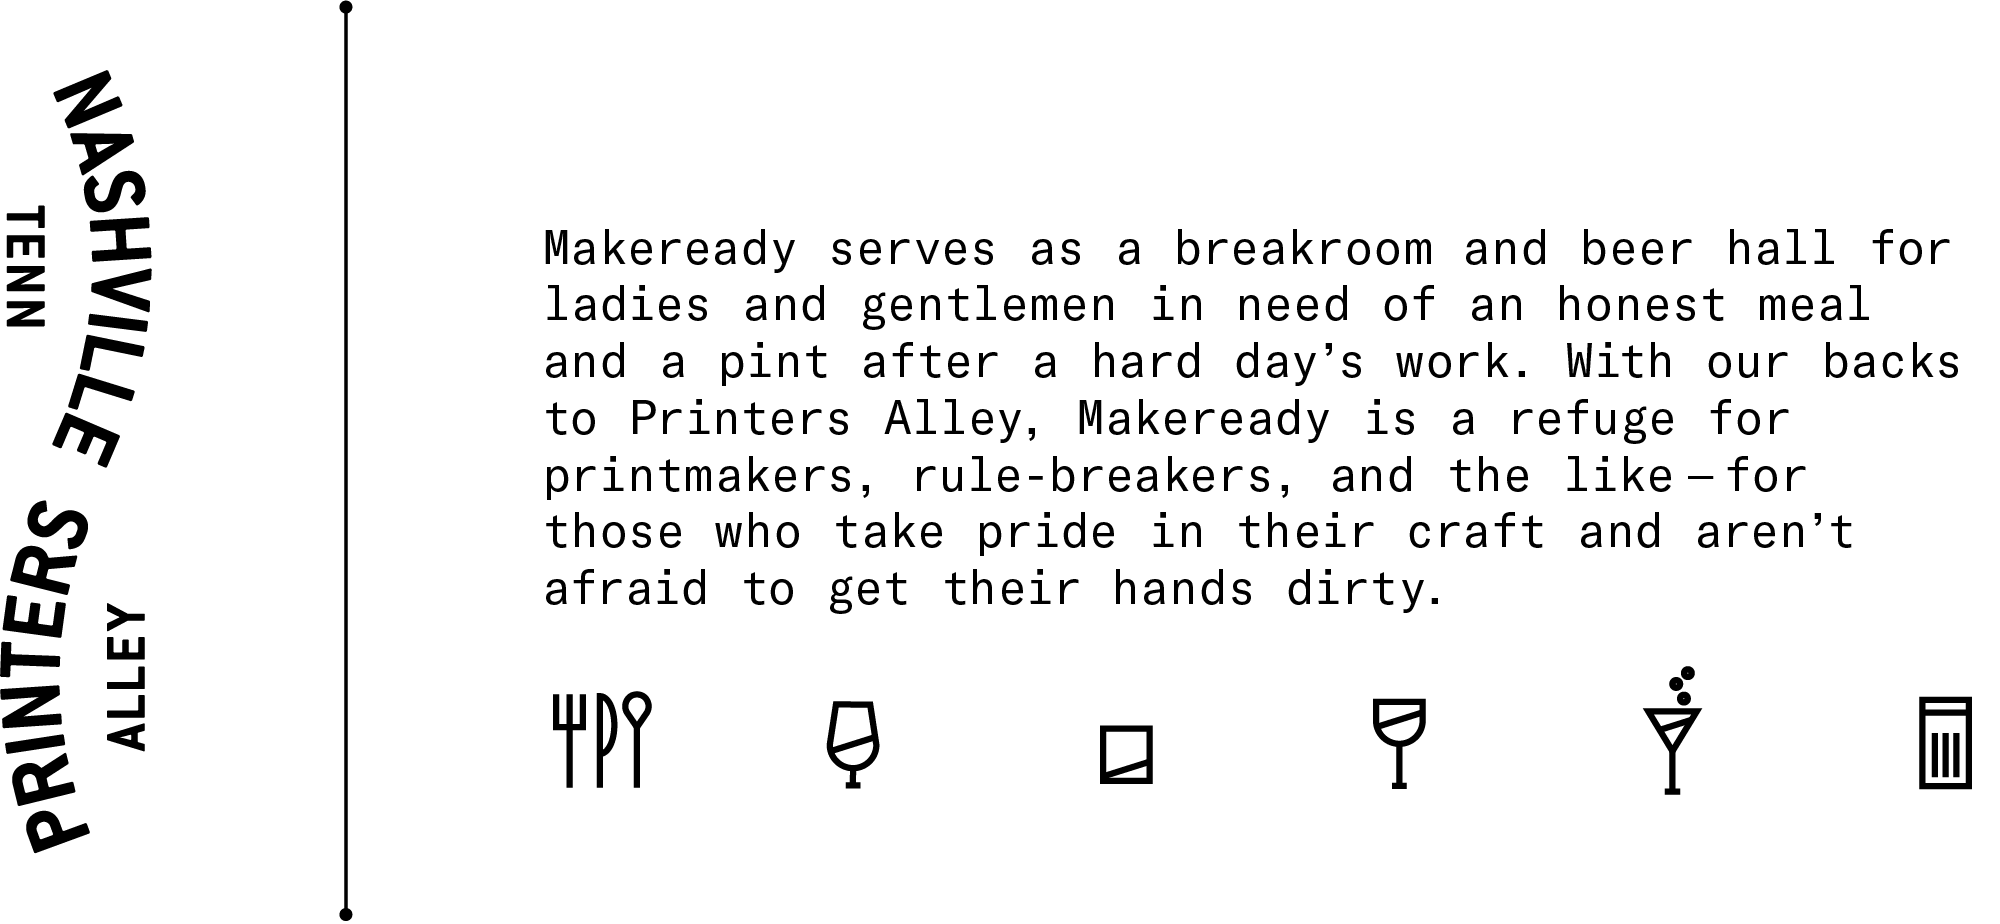 Makeready Libations & Liberation is located in Printers Alley in Downtown Nashville, TN.